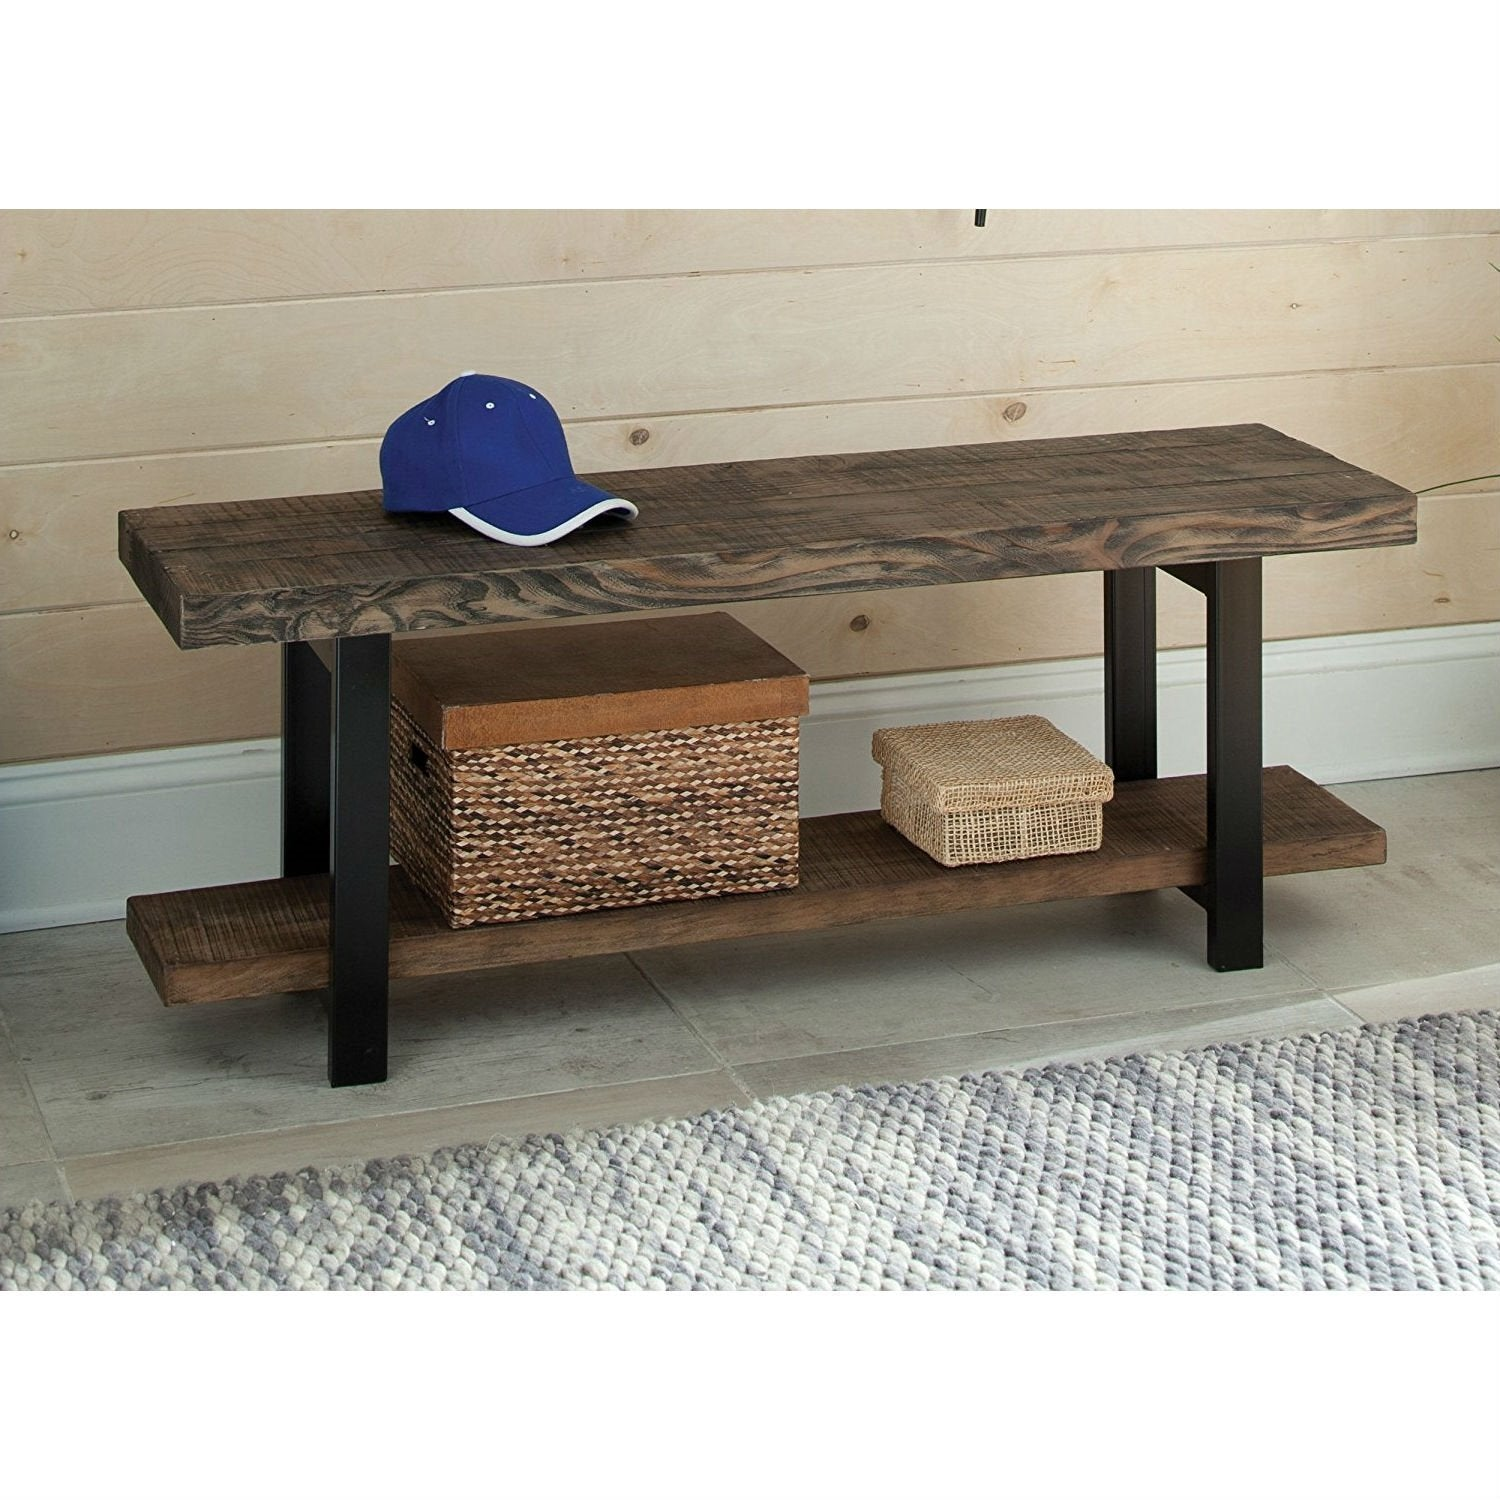 Mark Accent Bench